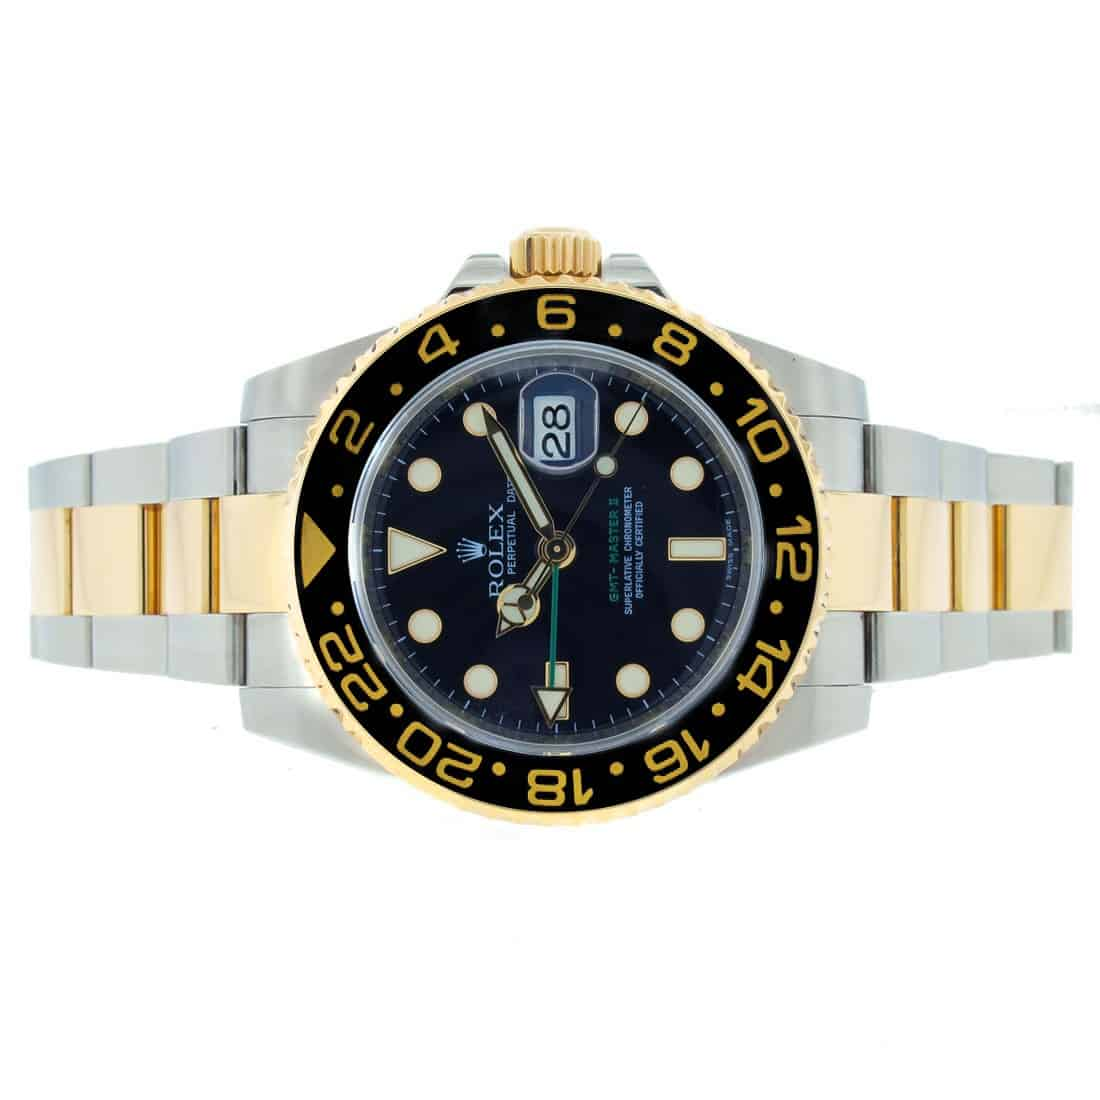 GMT Master II 05 side